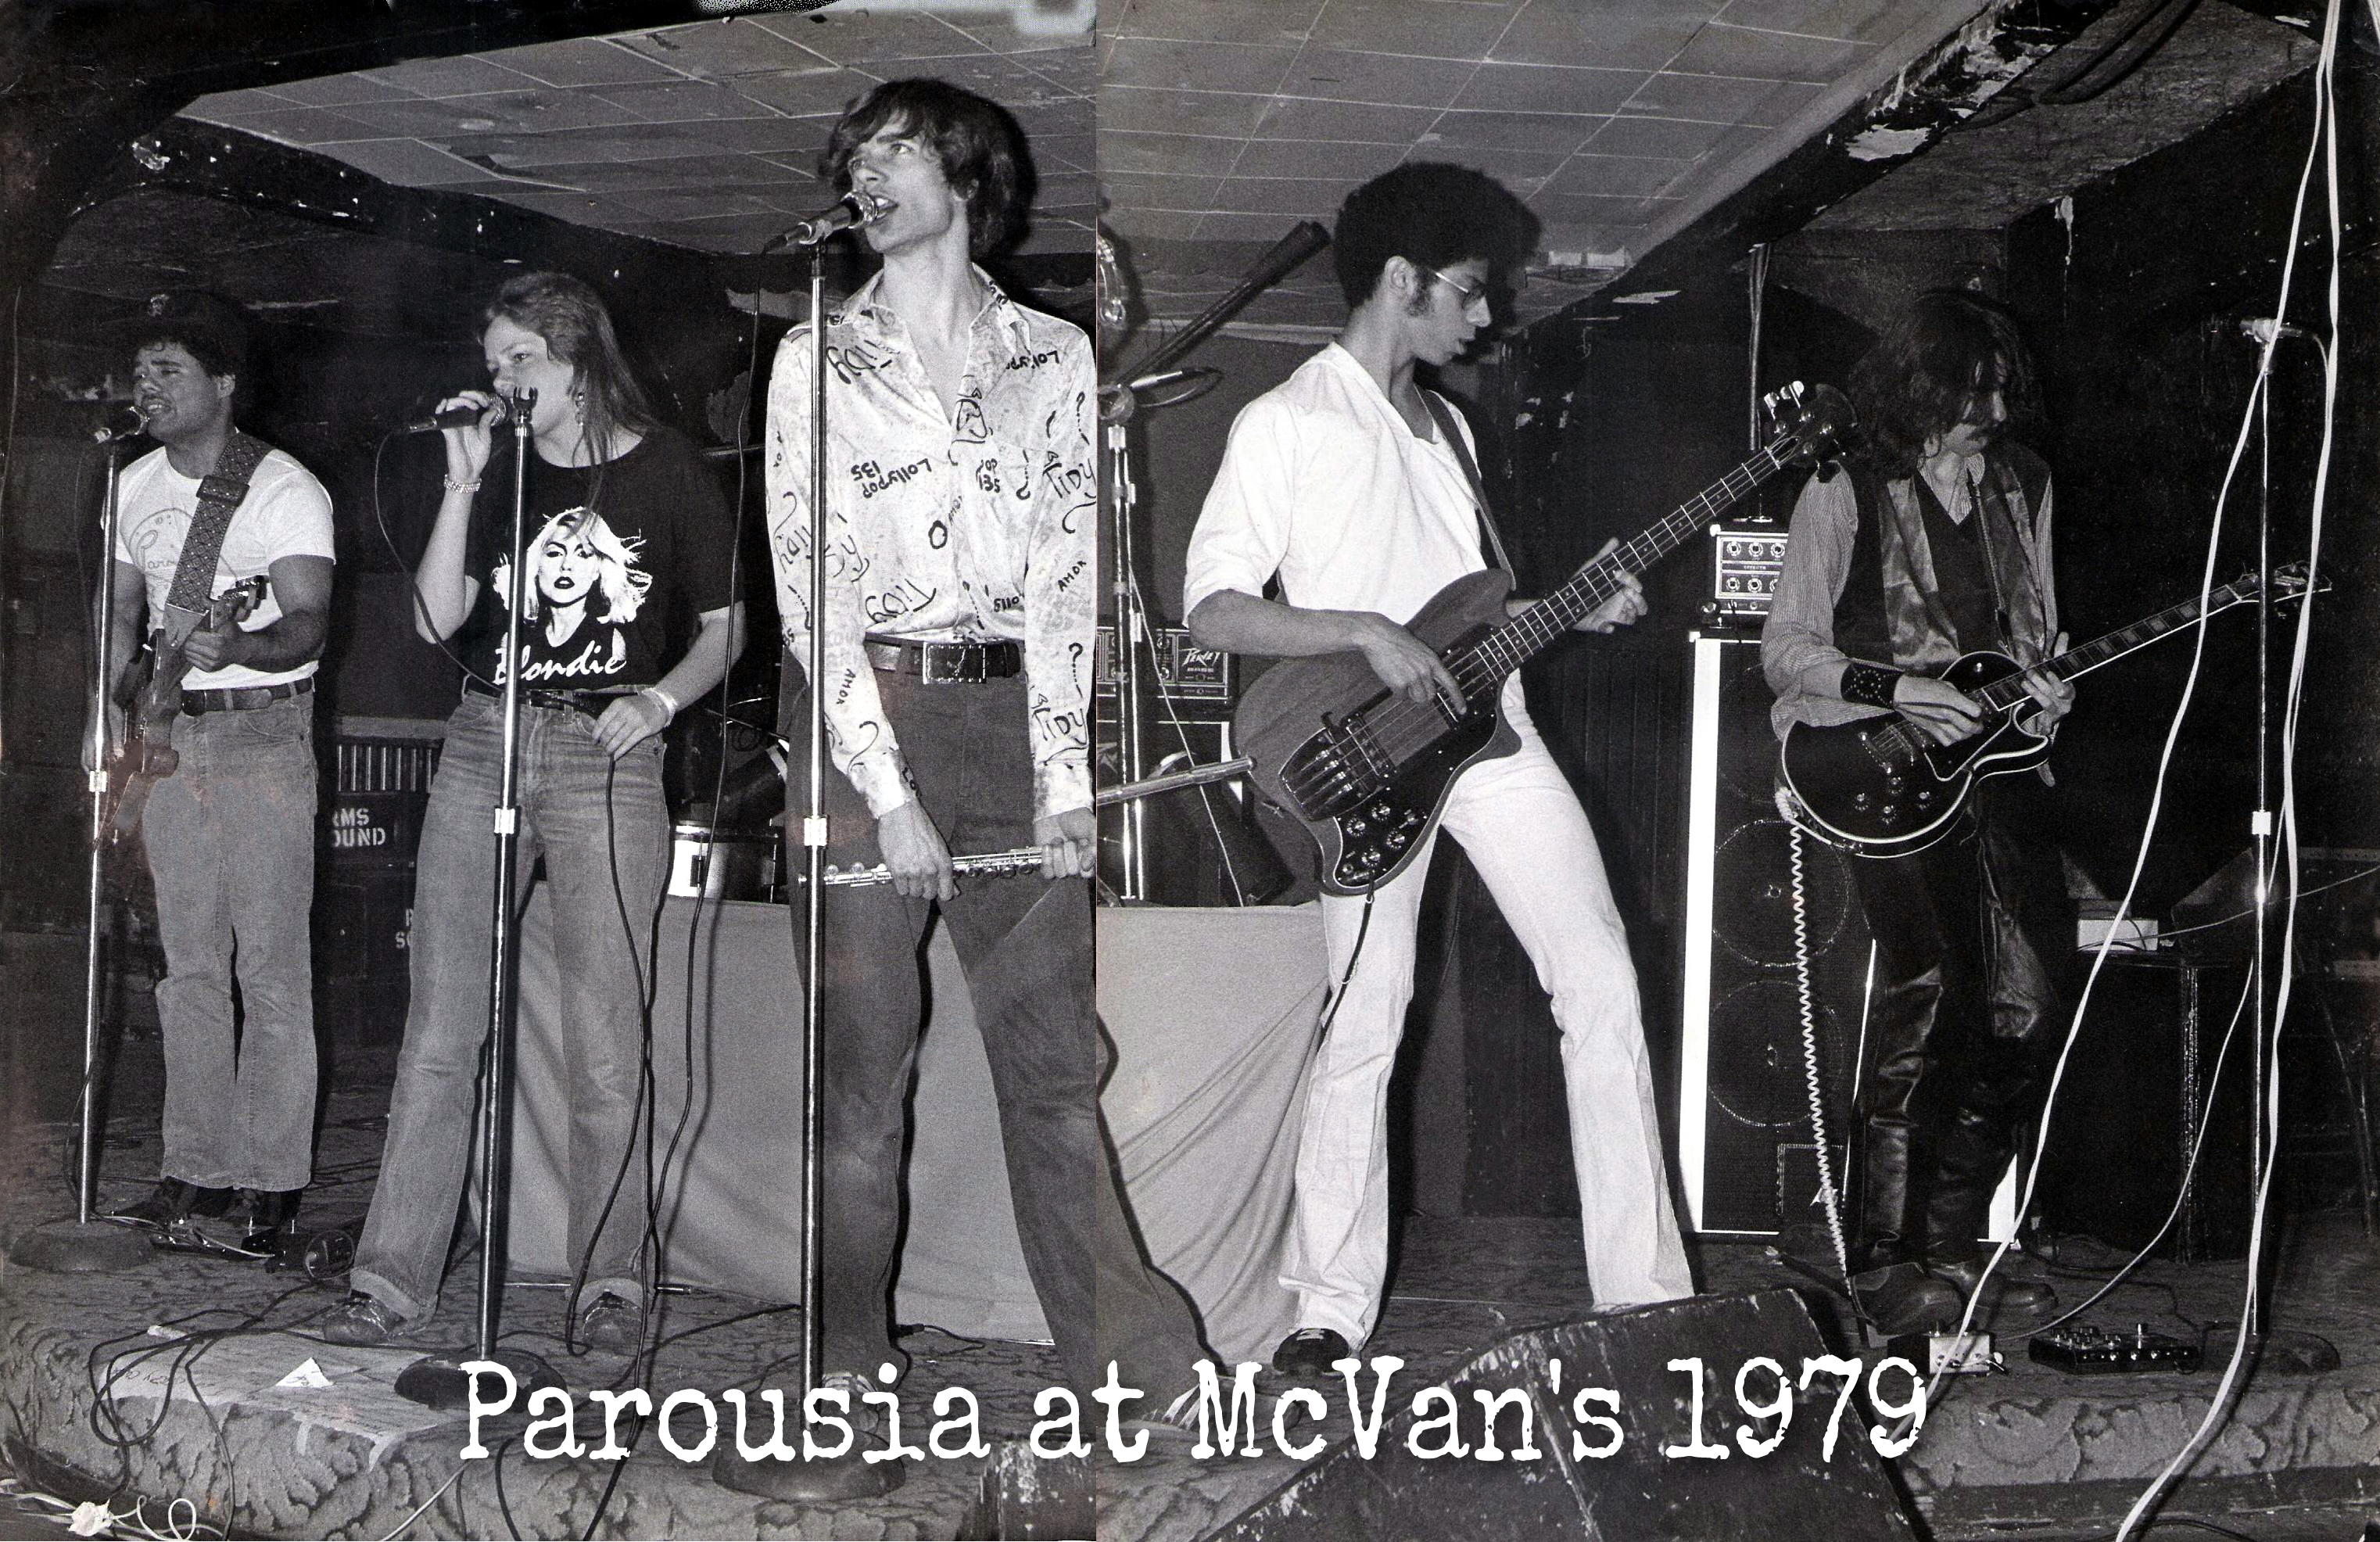 Parousia – a 'frequent flyer' at McVan's nite club 1978-1979